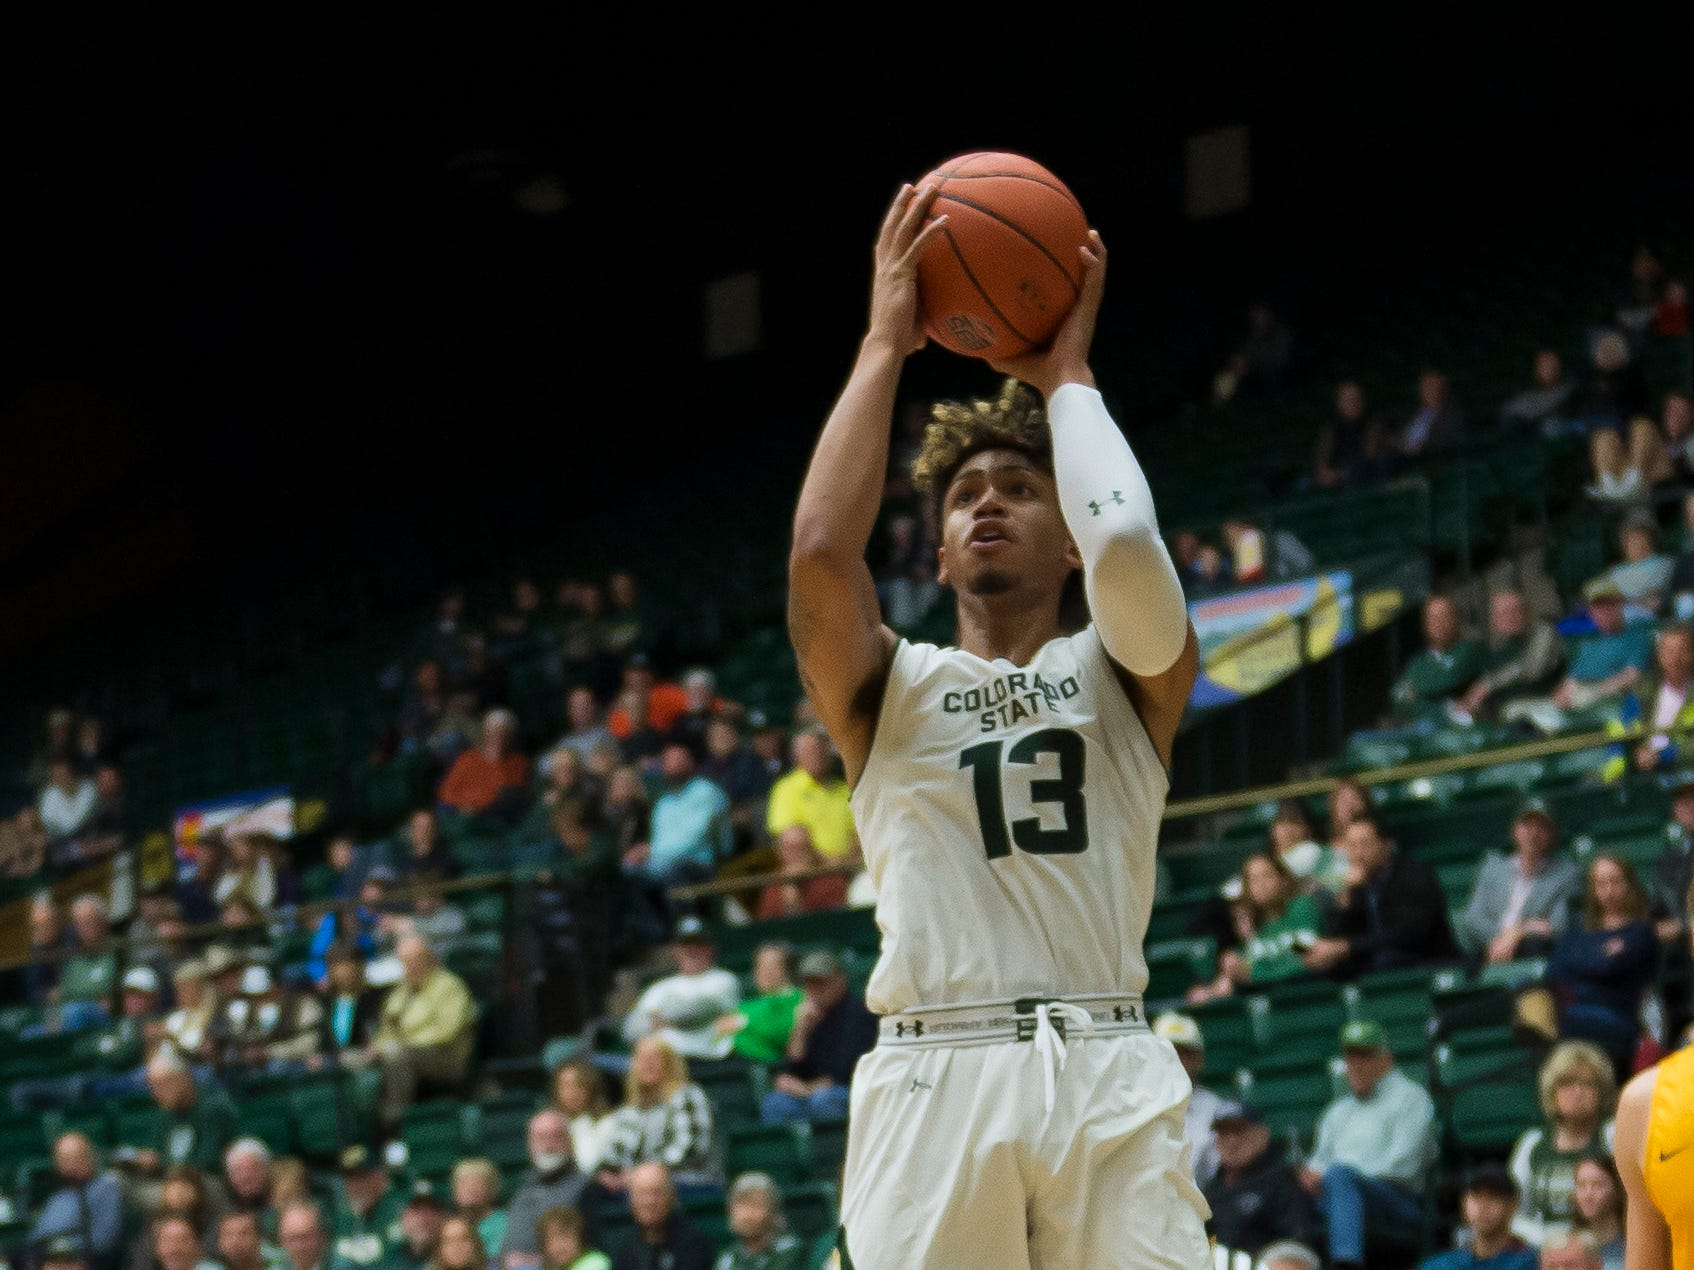 Colorado State University junior forward Lorenzo Jenkins (13) takes a shot over Colorado Christian University junior guard Terry McFadden (1) on Wednesday, Nov. 7, 2018, at Moby Arena in Fort Collins, Colo.